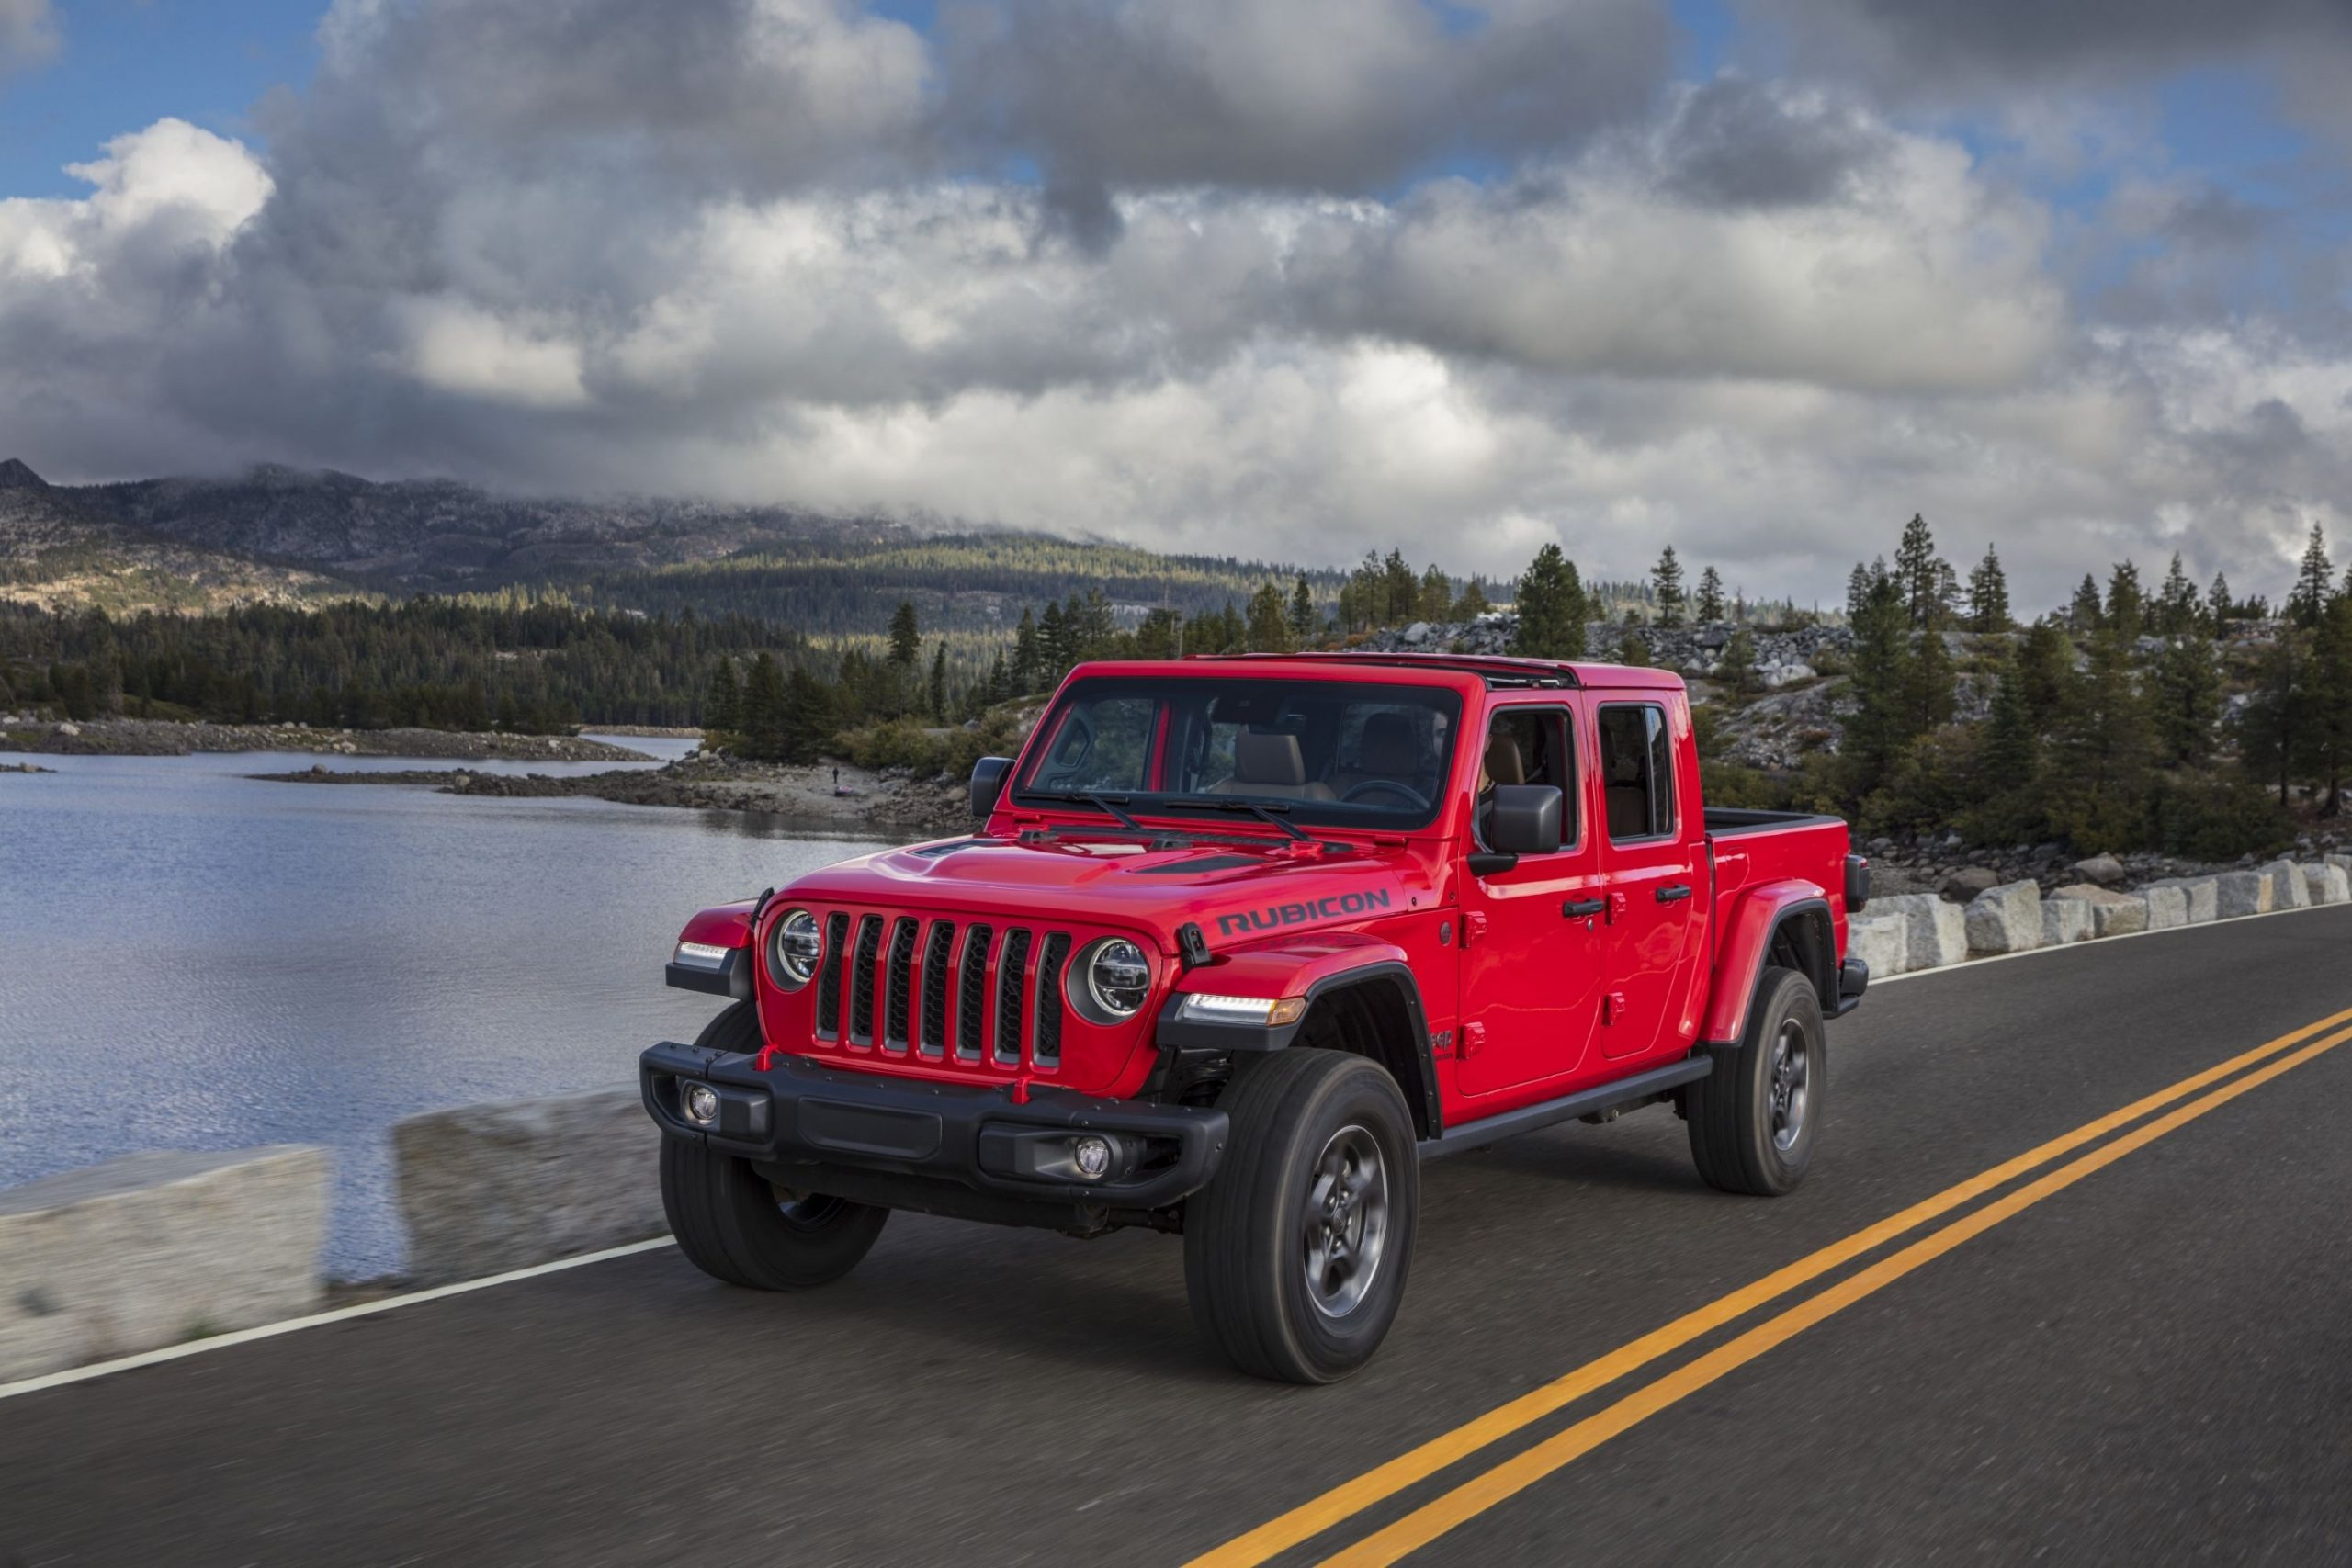 4 Jeep Gladiator Review, Pricing, and Specs - Jeep Truck 2021 Specs